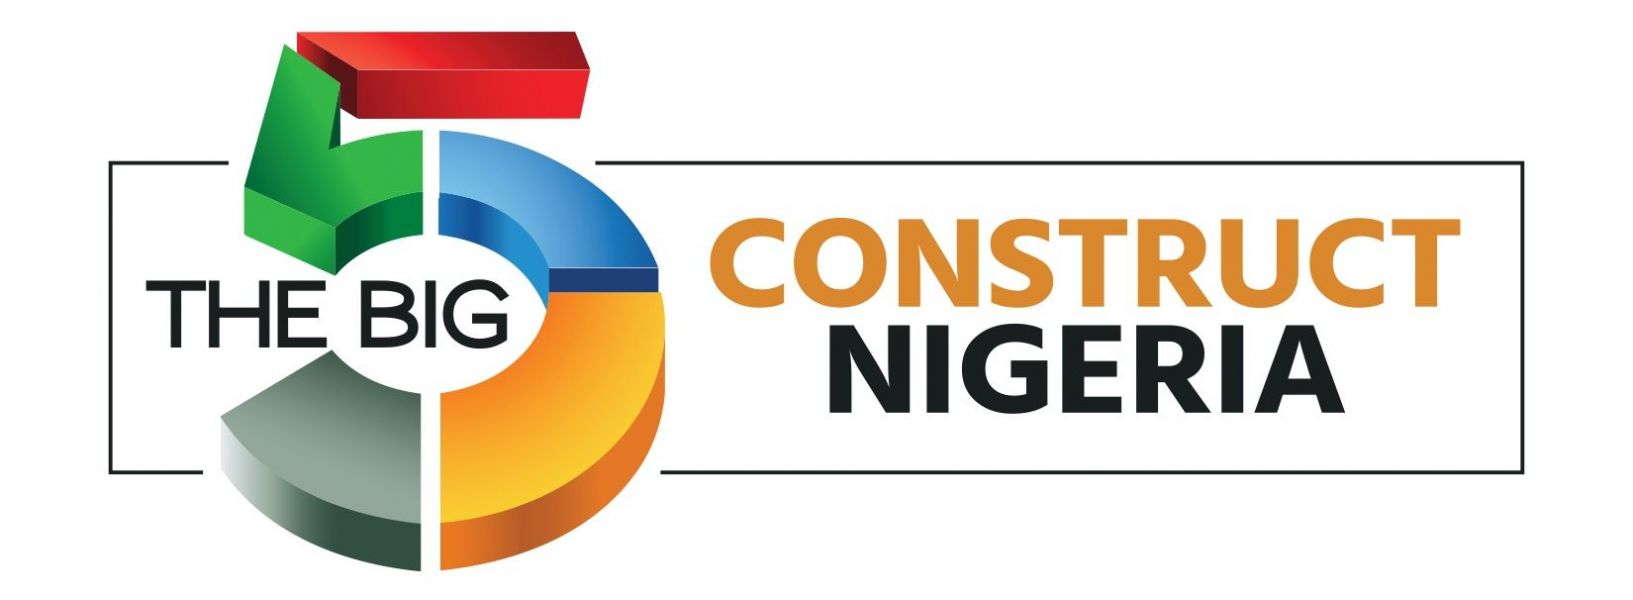 Logotipo de The Big 5 Nigeria